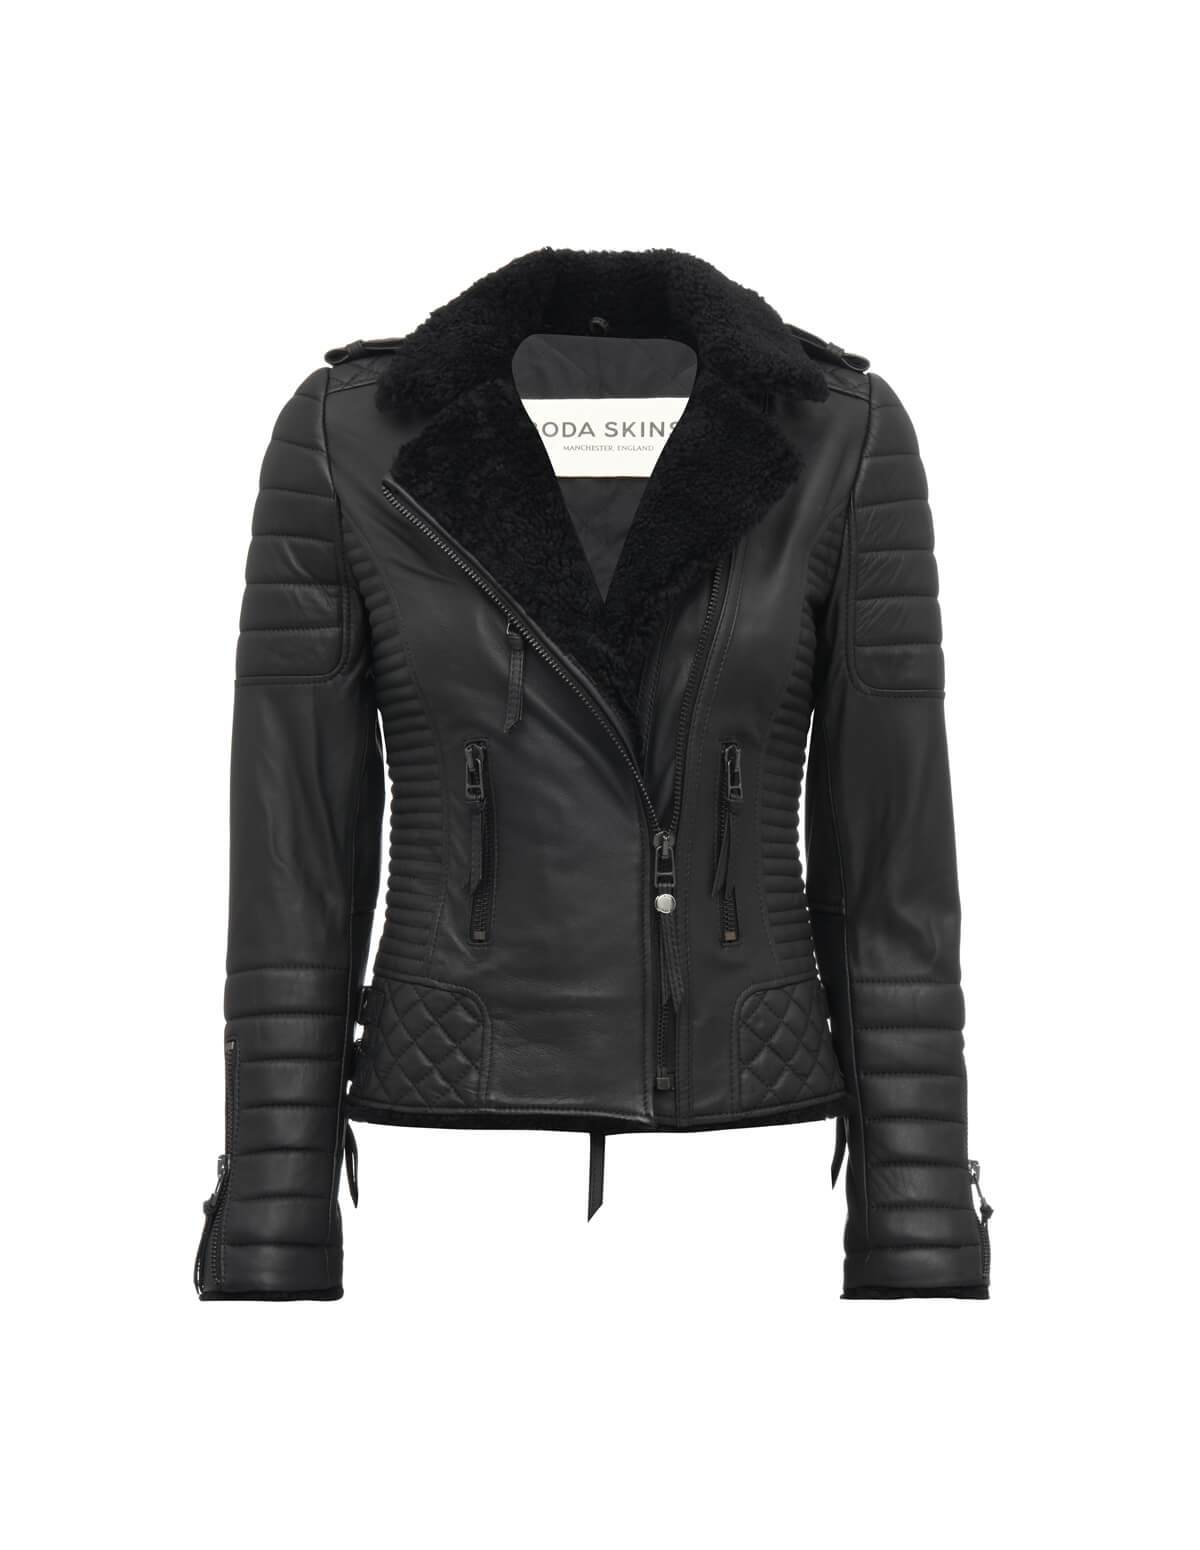 Kay Michaels Shearling Jacket